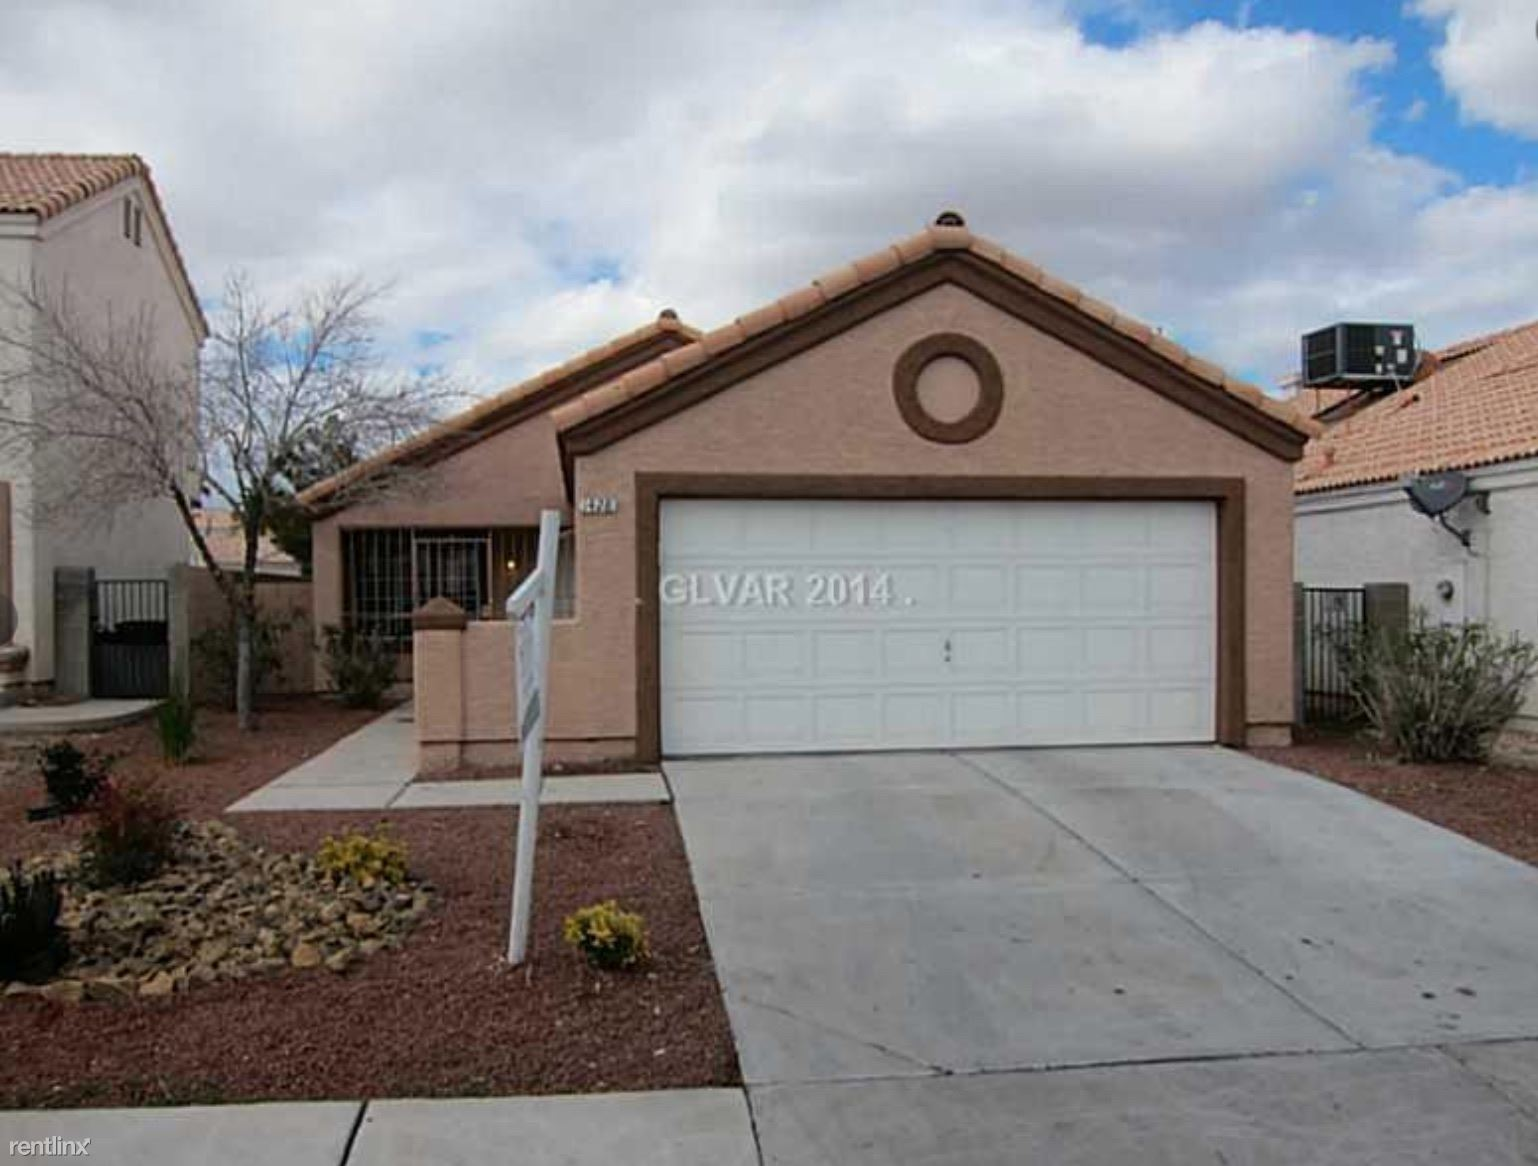 1428 Canyon Rose Way - 1900USD / month